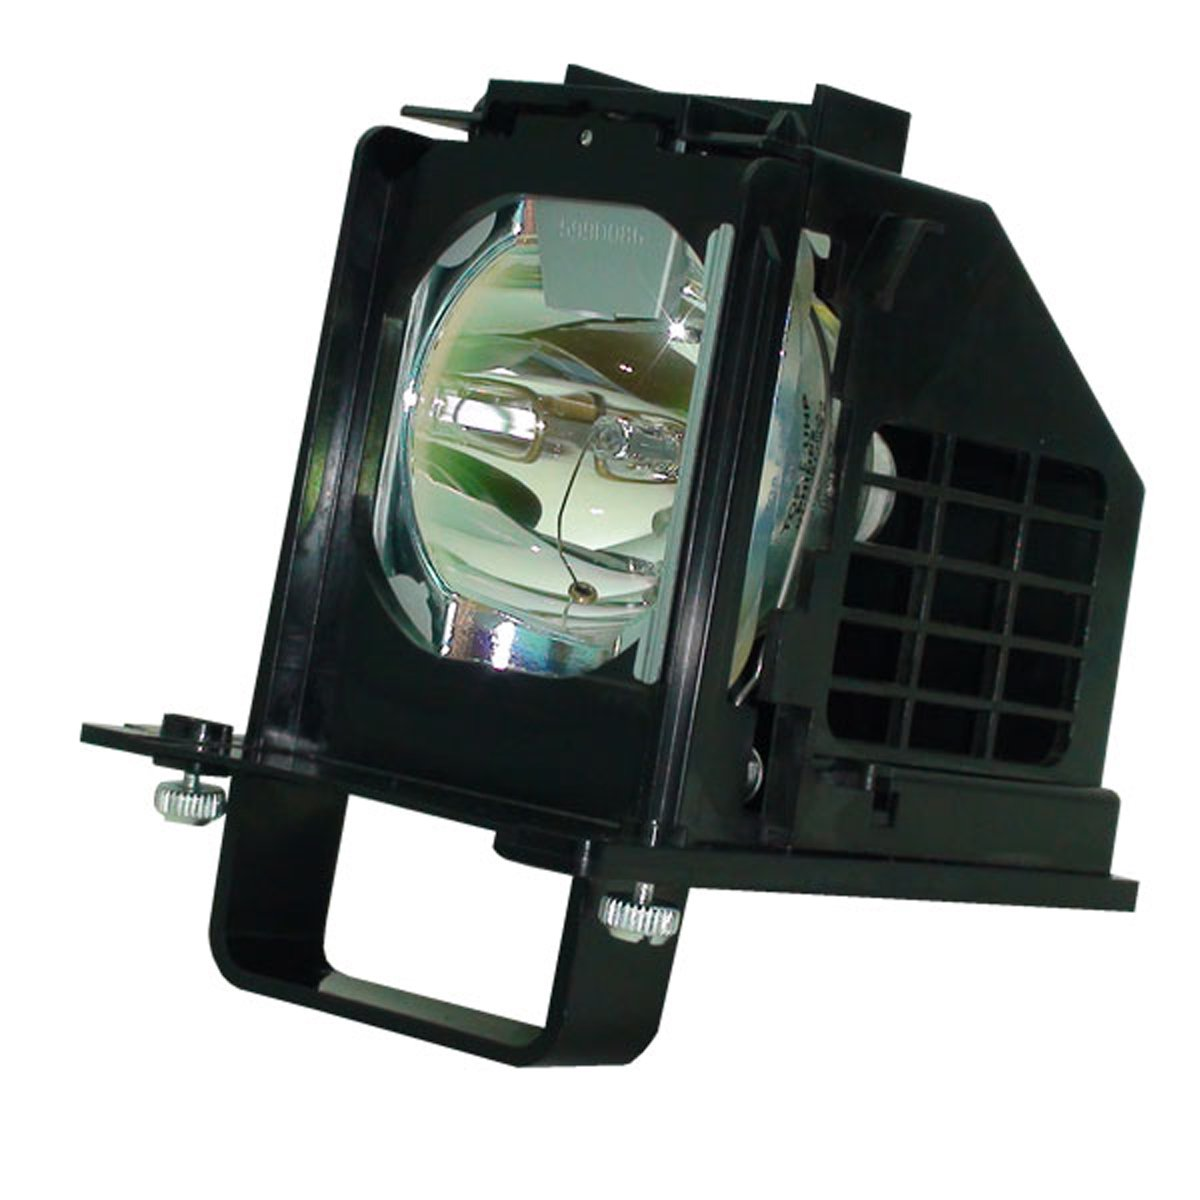 AuraBeam Professional Mitsubishi 915B441001 Television Replacement Lamp for WD-65638, WD-60738, WD-60C10, WD-65C10, WD-73638, WD-73738, WD-73C10, WD-82838 (Powered by Philips) with Housing